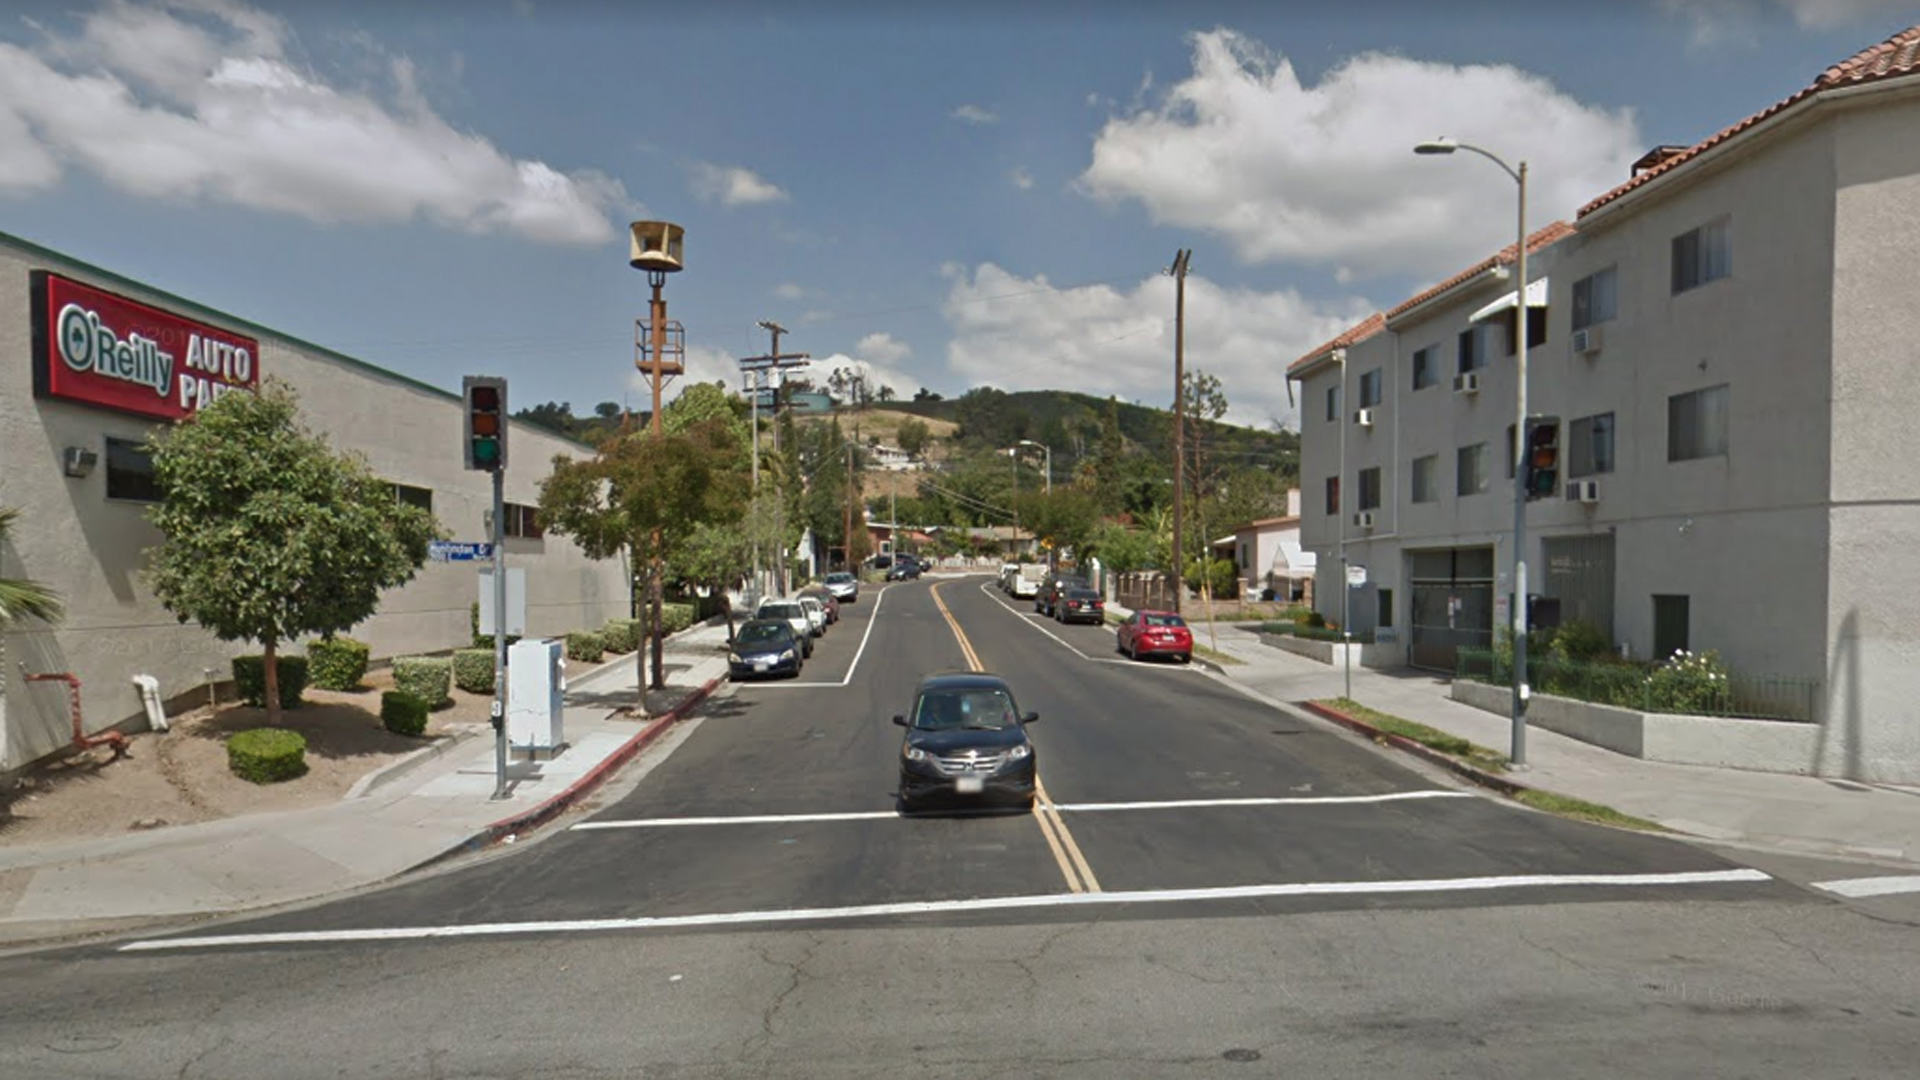 The 3900 block of Van Horne Avenue in the El Sereno neighborhood of Los Angeles, as viewed in a Google Street View image.